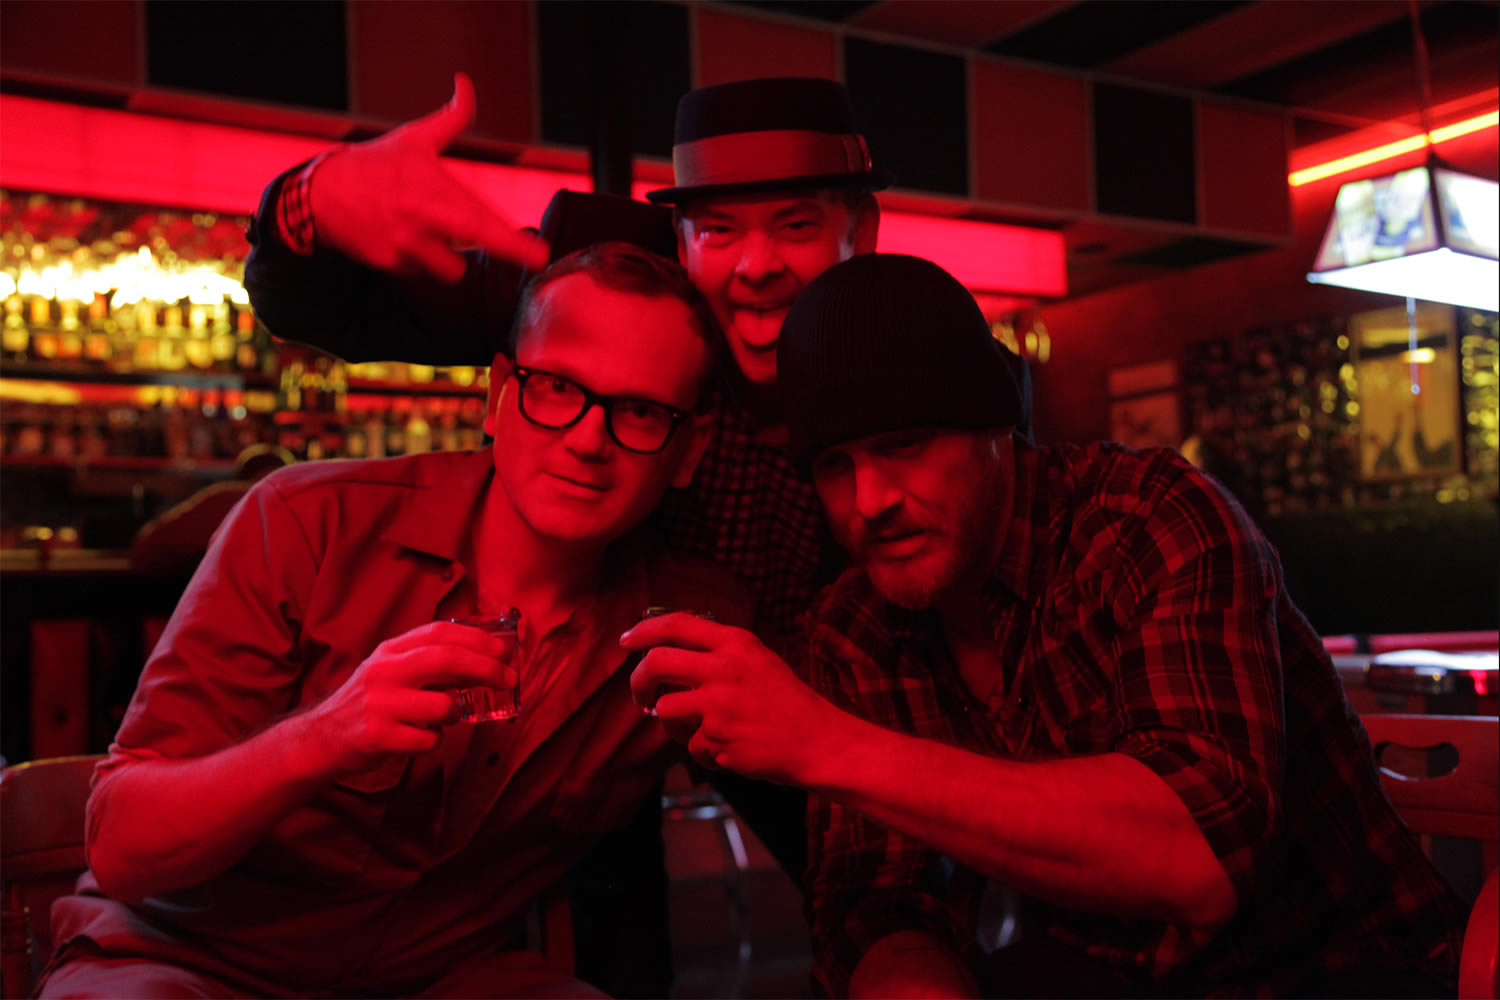 three guys at a bar, with red light, cheap thrills